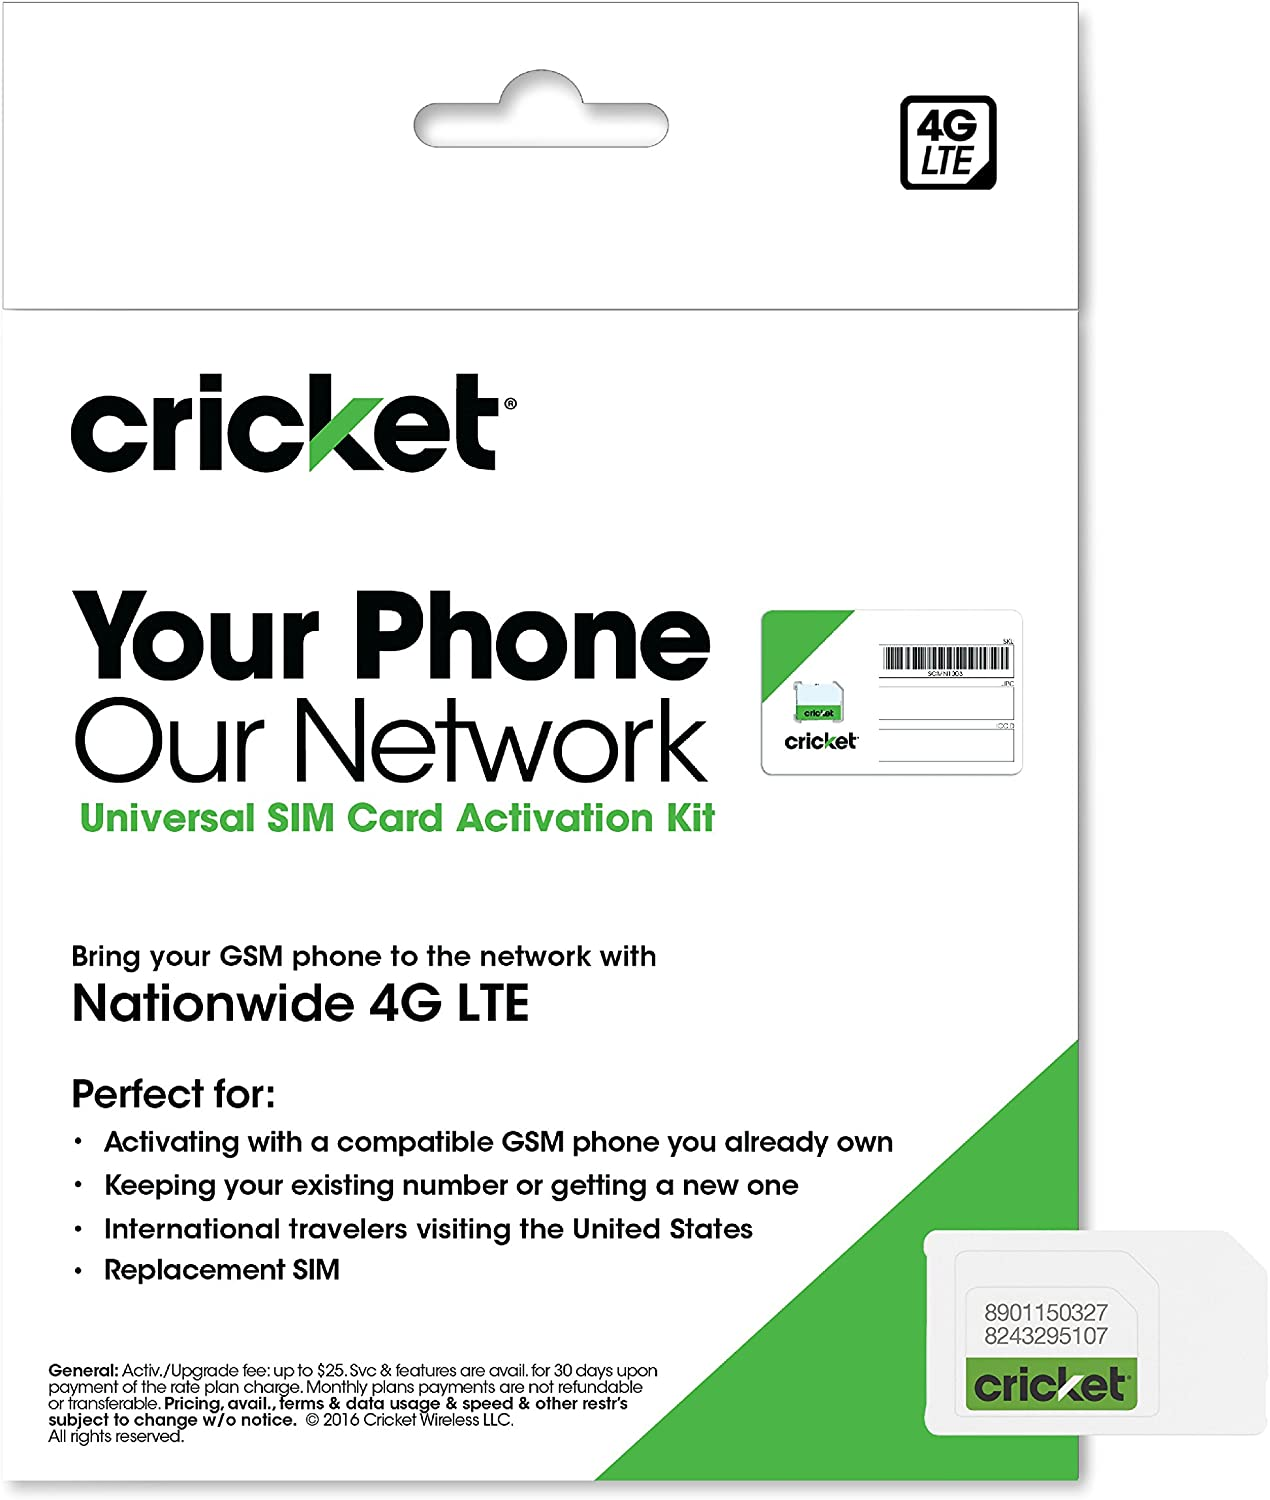 Amazon.com: Wireless completa Starter Pack de Cricket: Nano ...